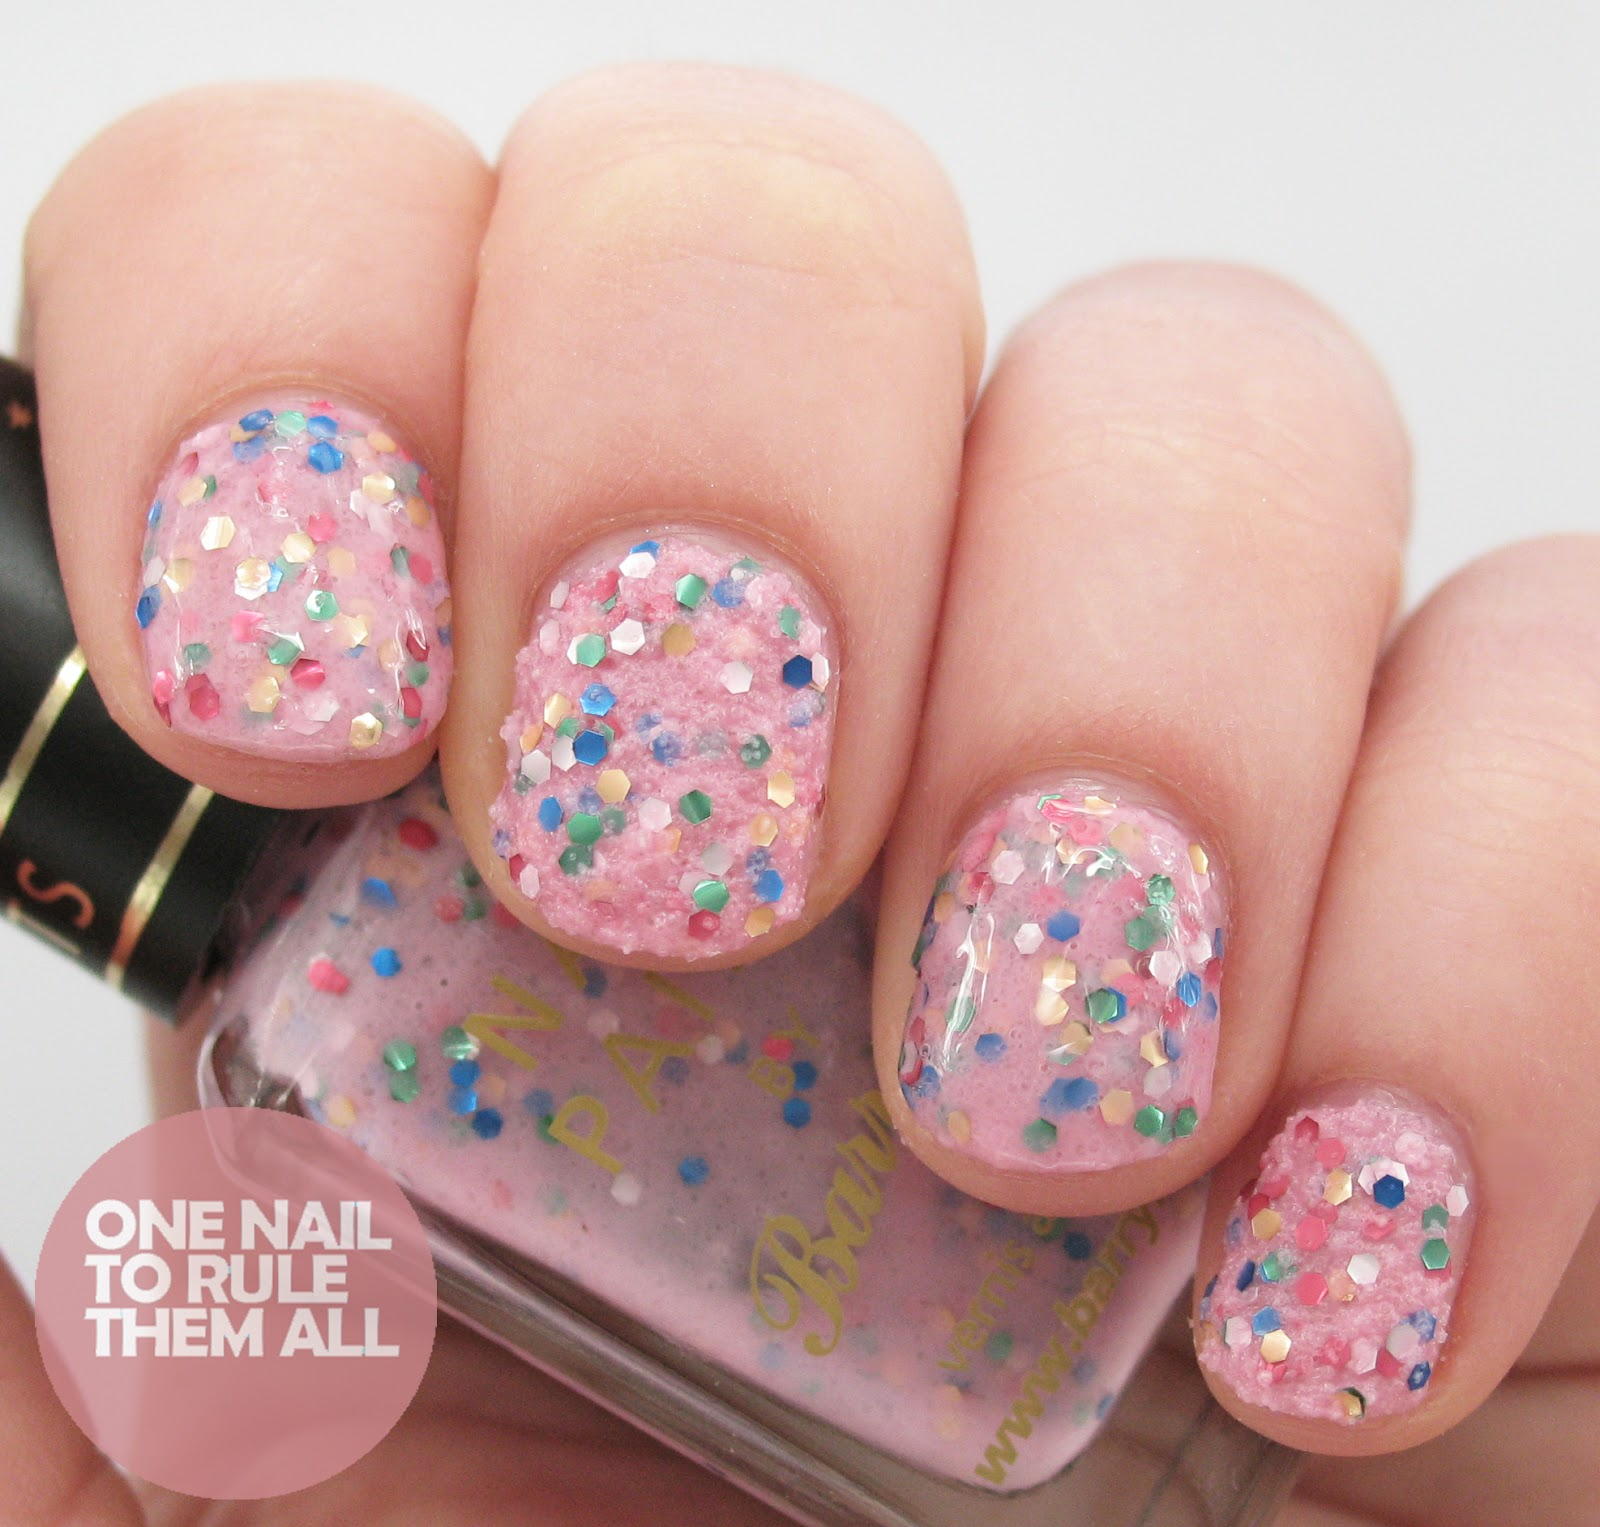 One Nail To Rule Them All: Barry M Sequin Nail Effects Review